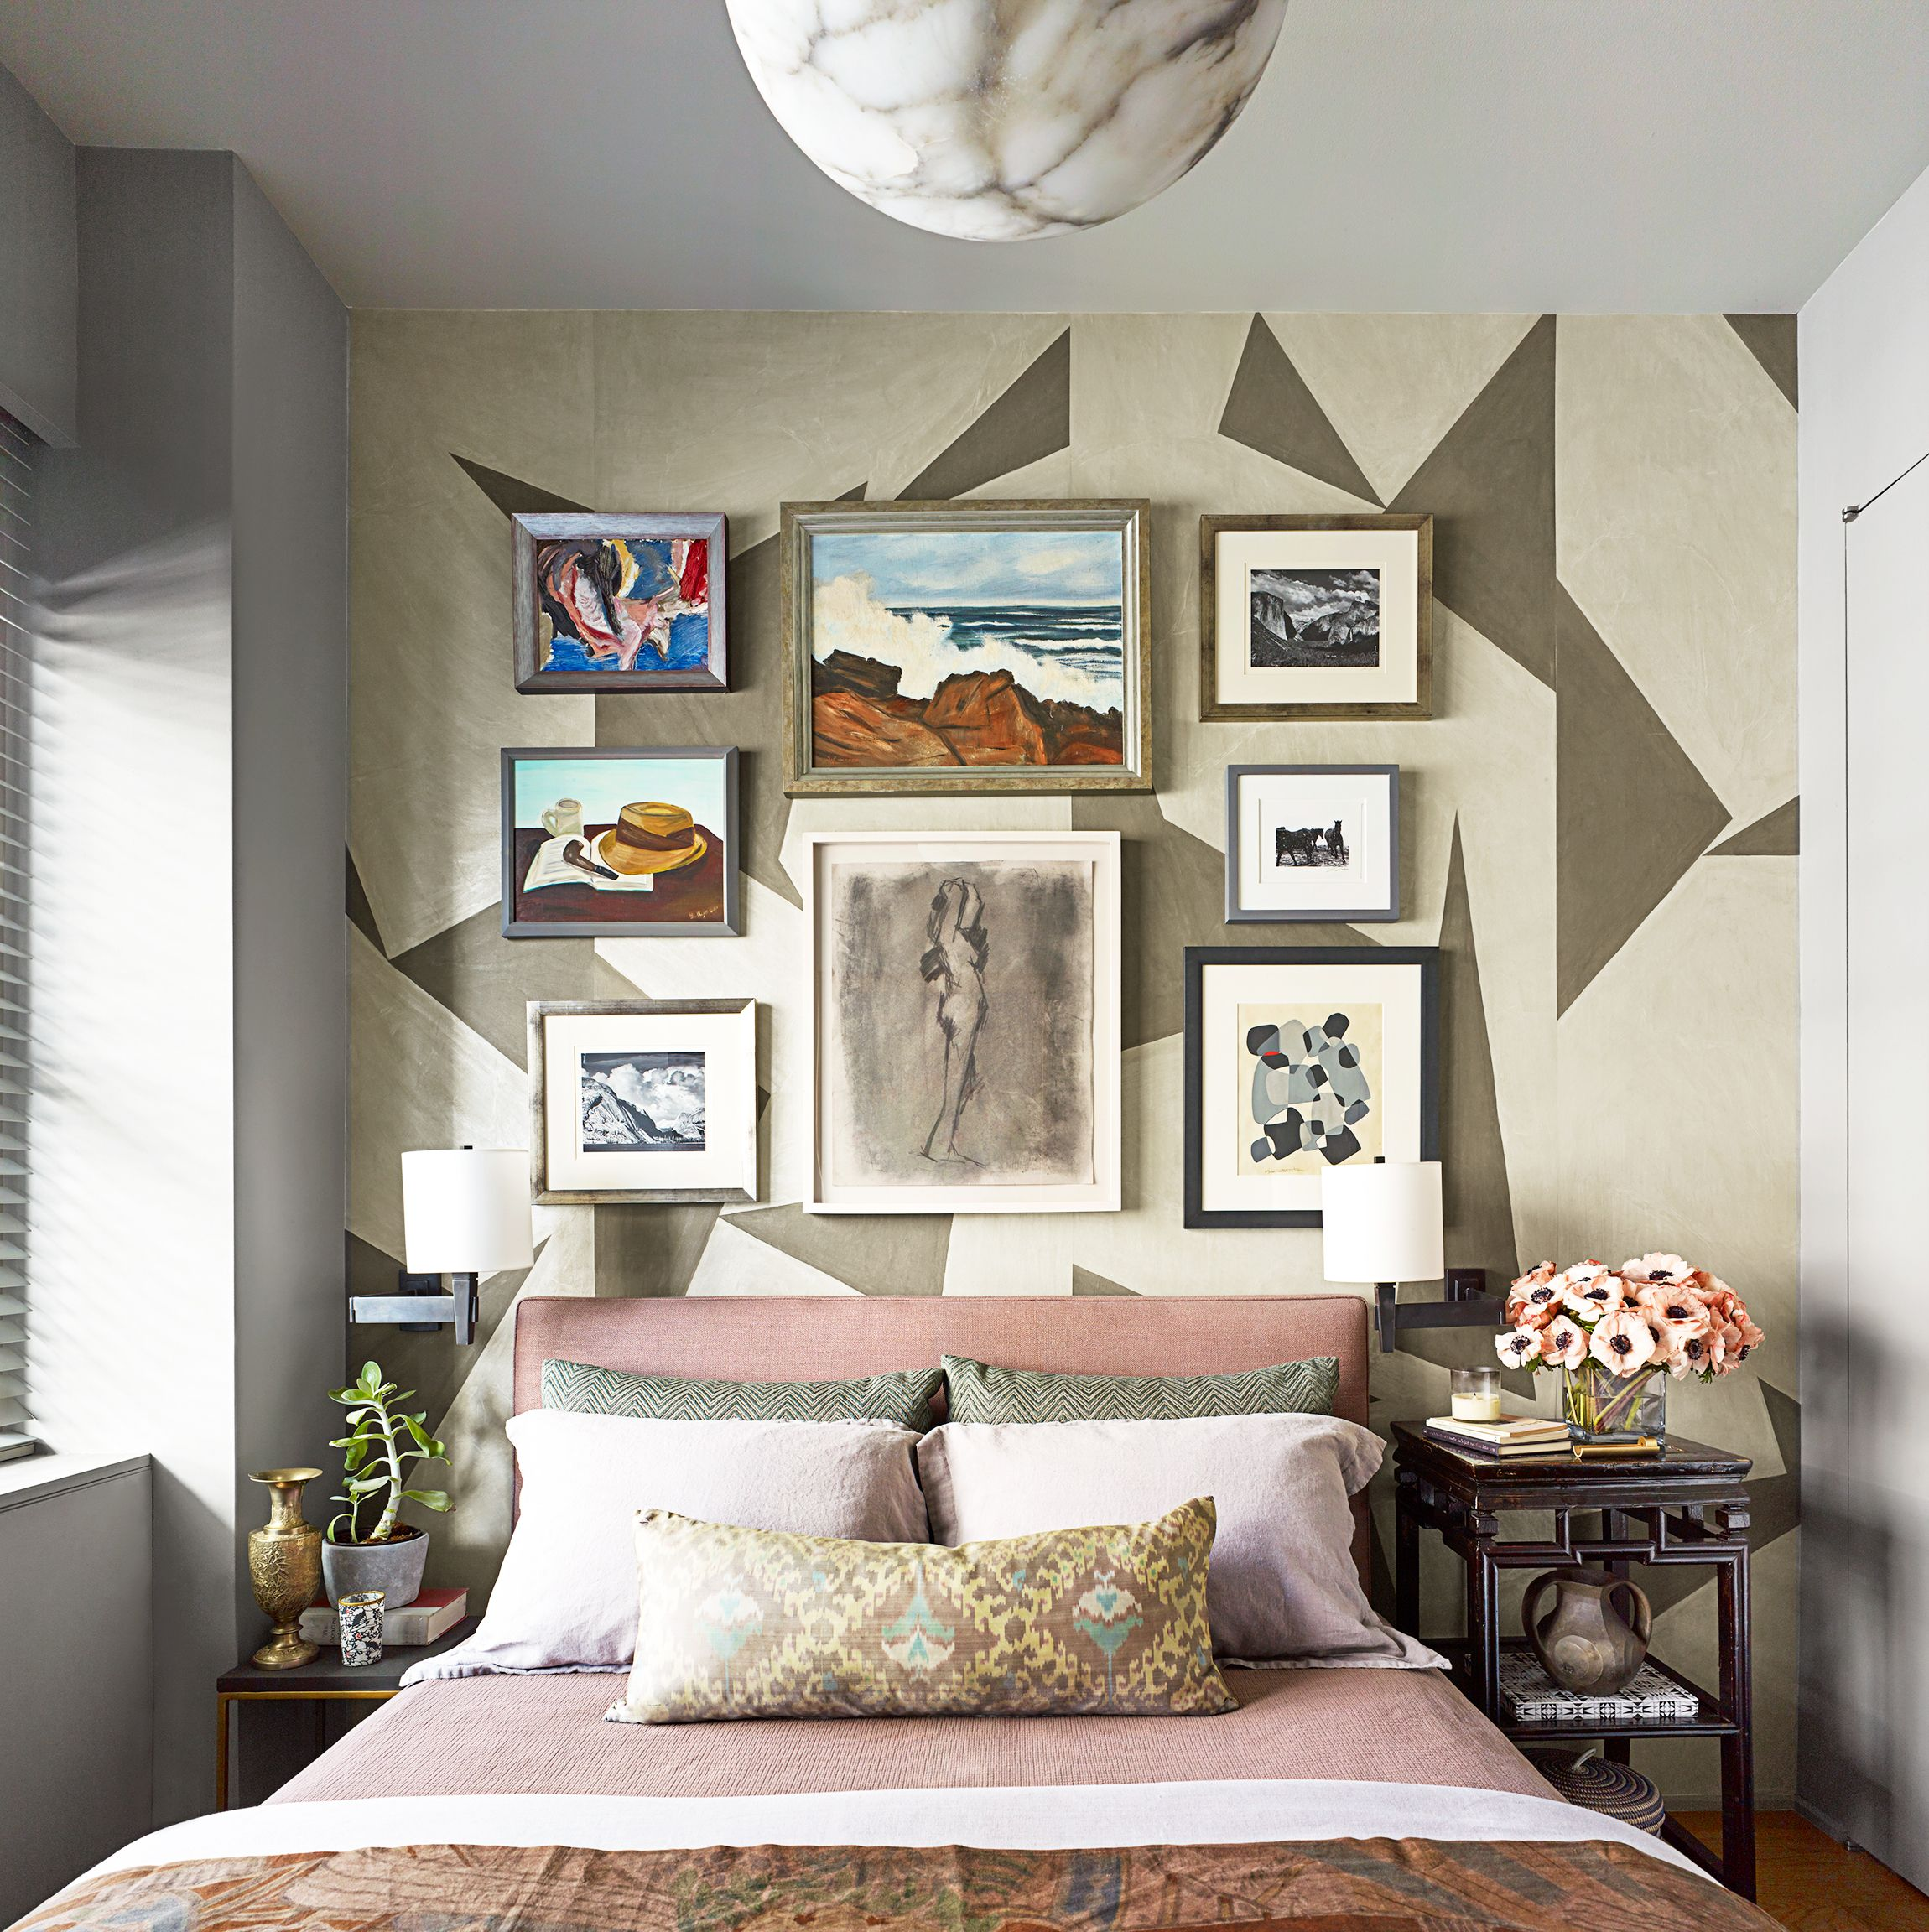 Awesome Ways To Decorate A Small Bedroom